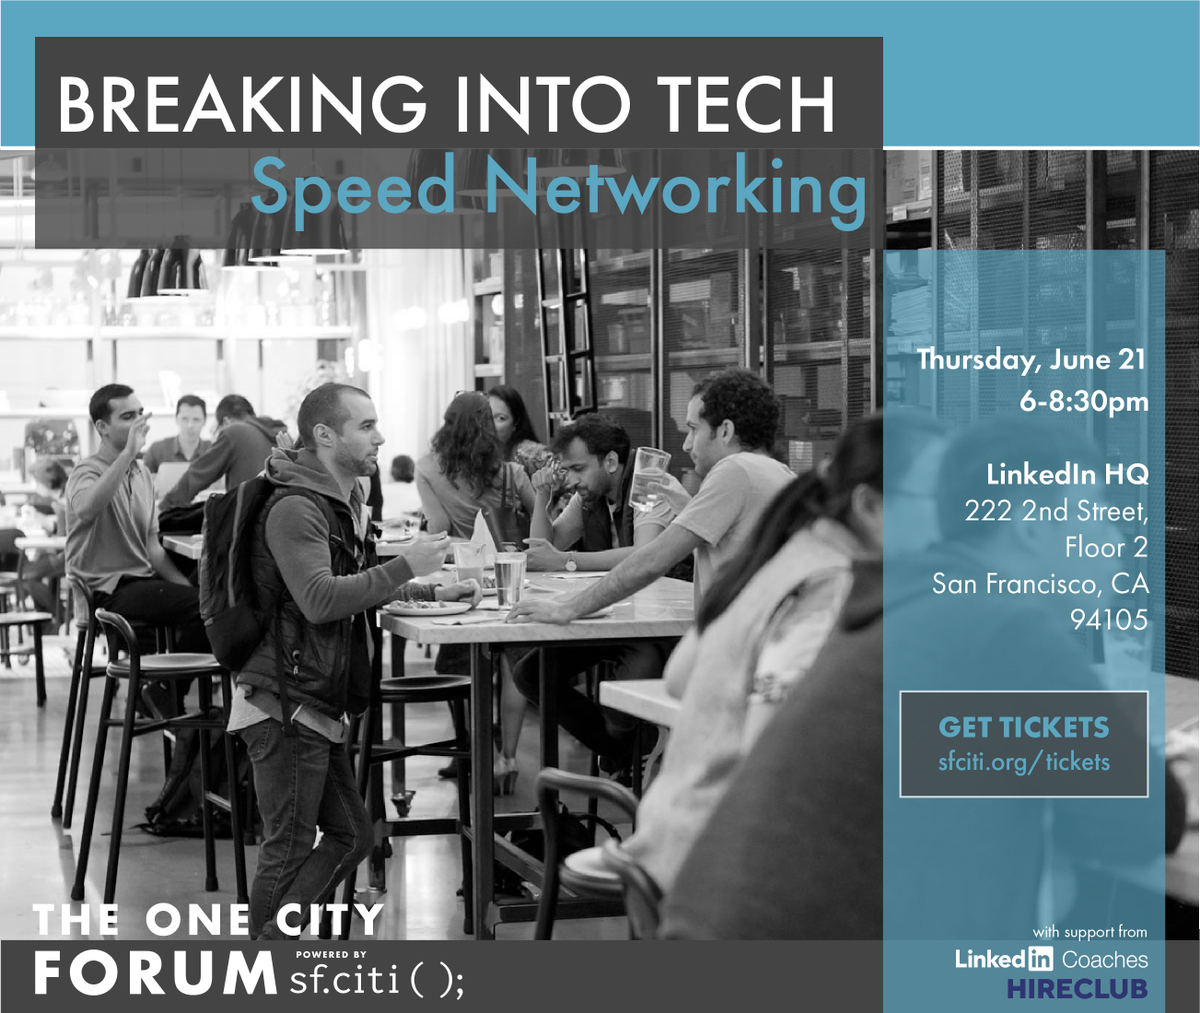 Looking for insider insight on how to work in #tech from tech employees themselves? Join @sfciti for a night of speed networking at Breaking Into Tech TOMORROW, June 21! Plus, get your resume reviewed by @hireclub!  https://t.co/fdAf4hzvAa #BreakIntoTech #OneCitySF